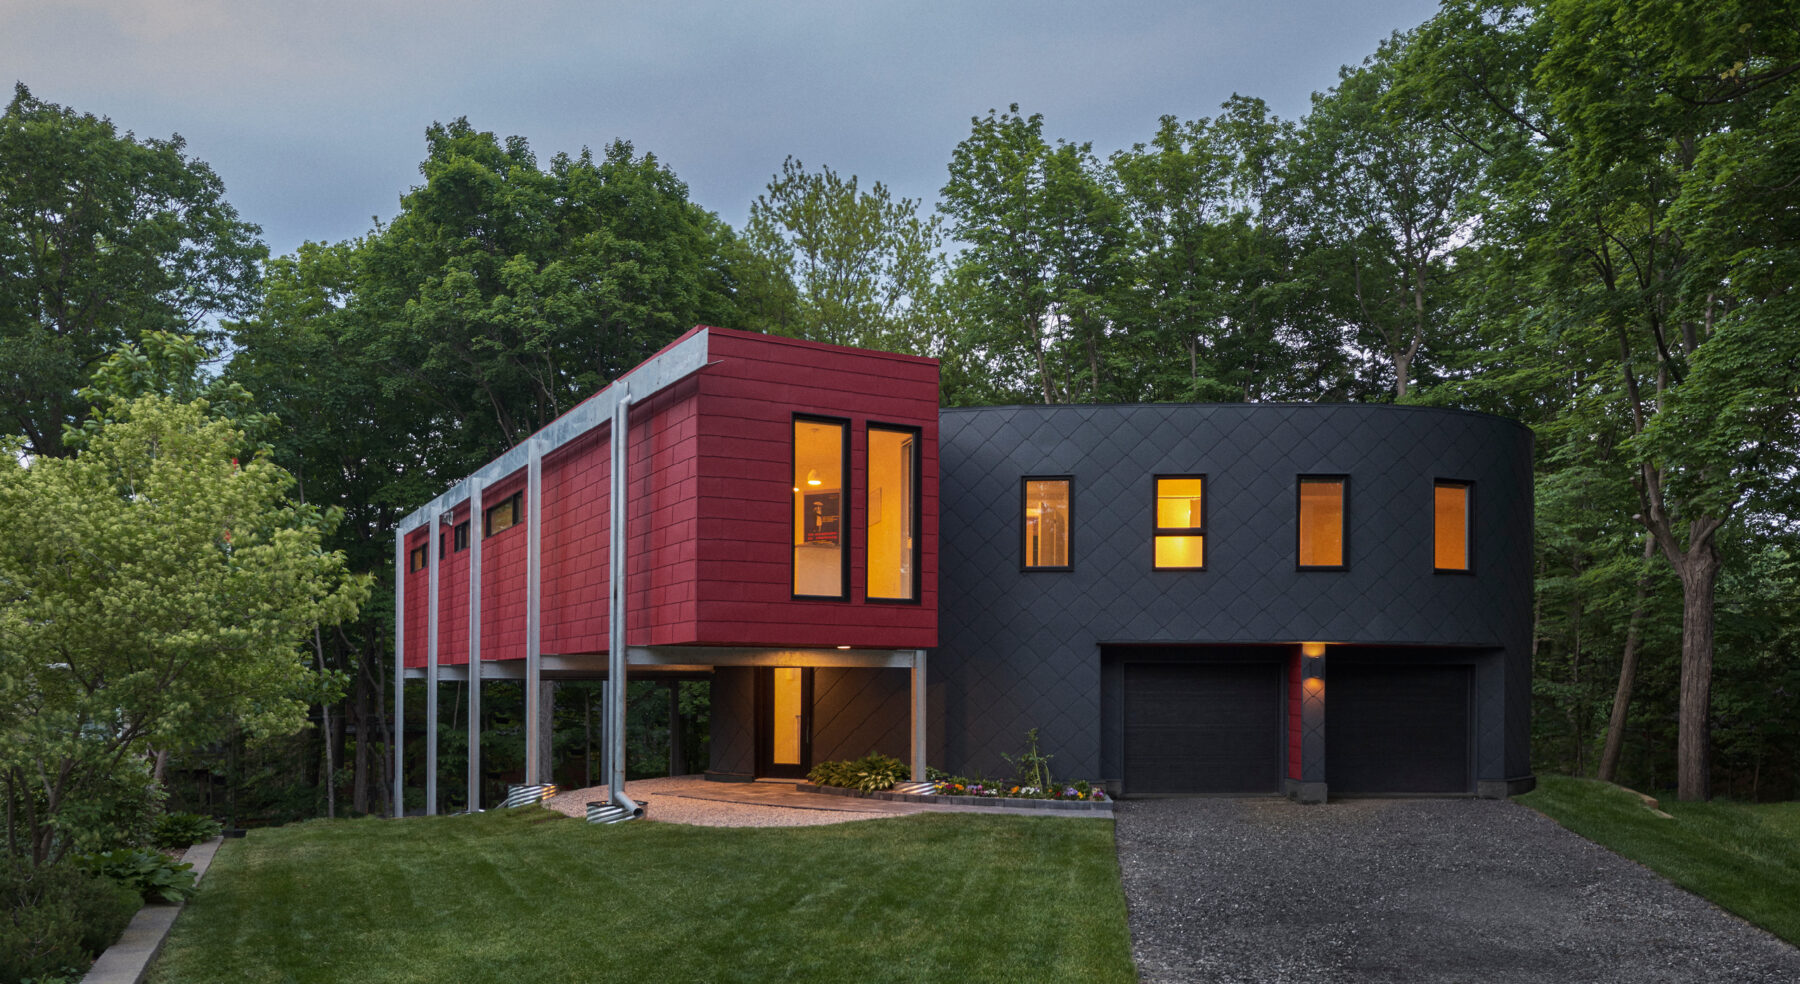 DASH Home project - wide view of modern home design front facade